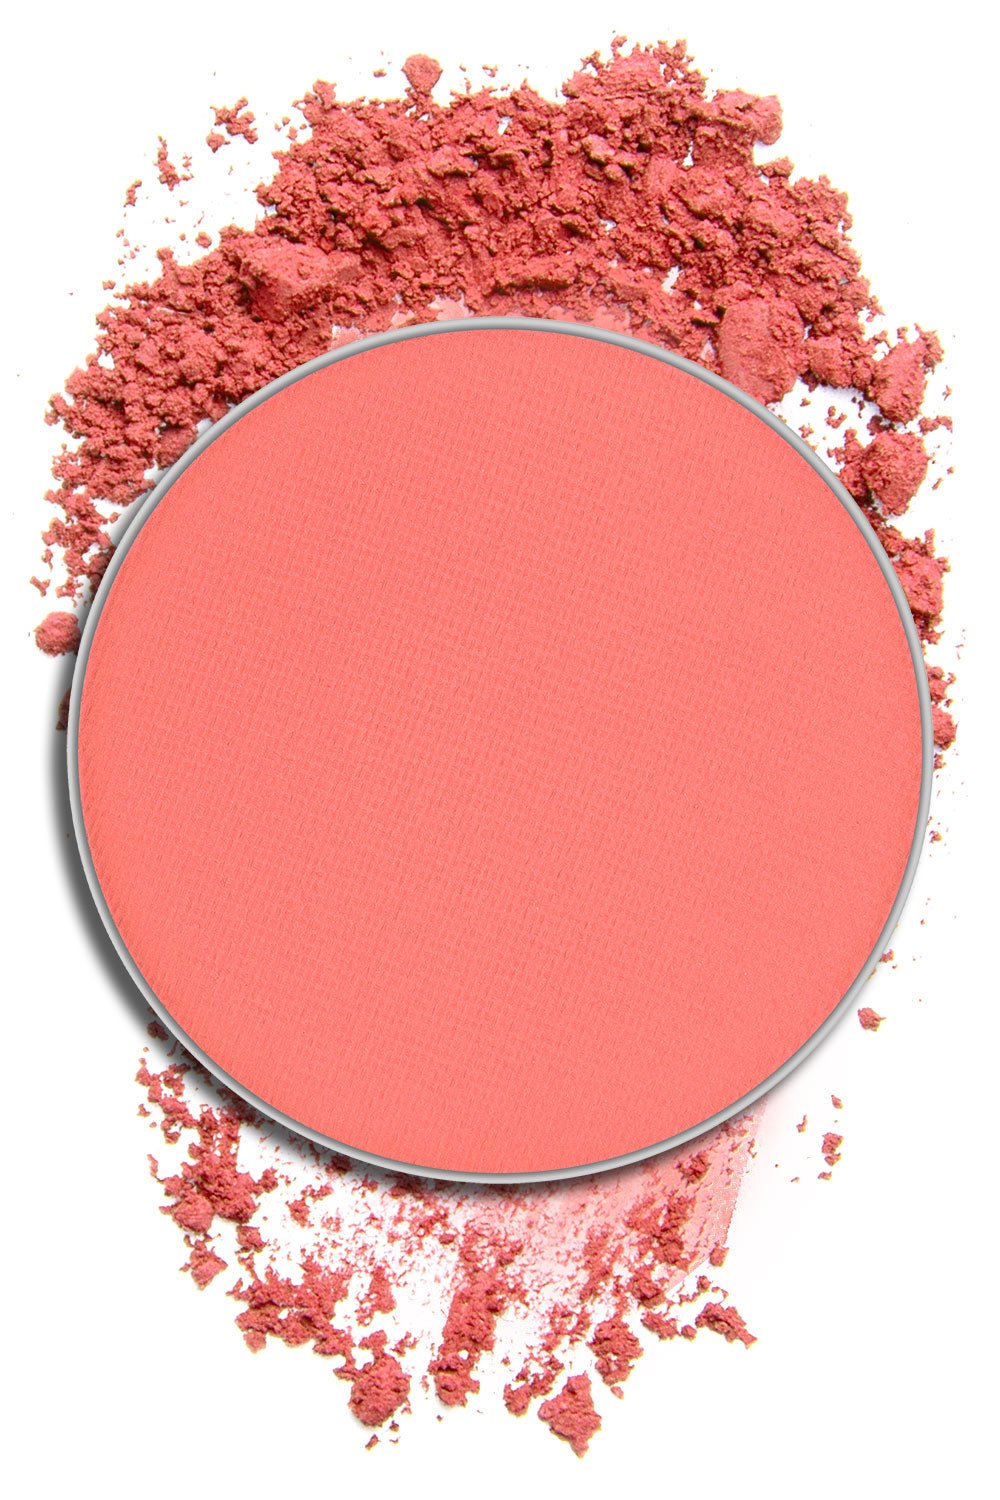 Miami - Blush Pan